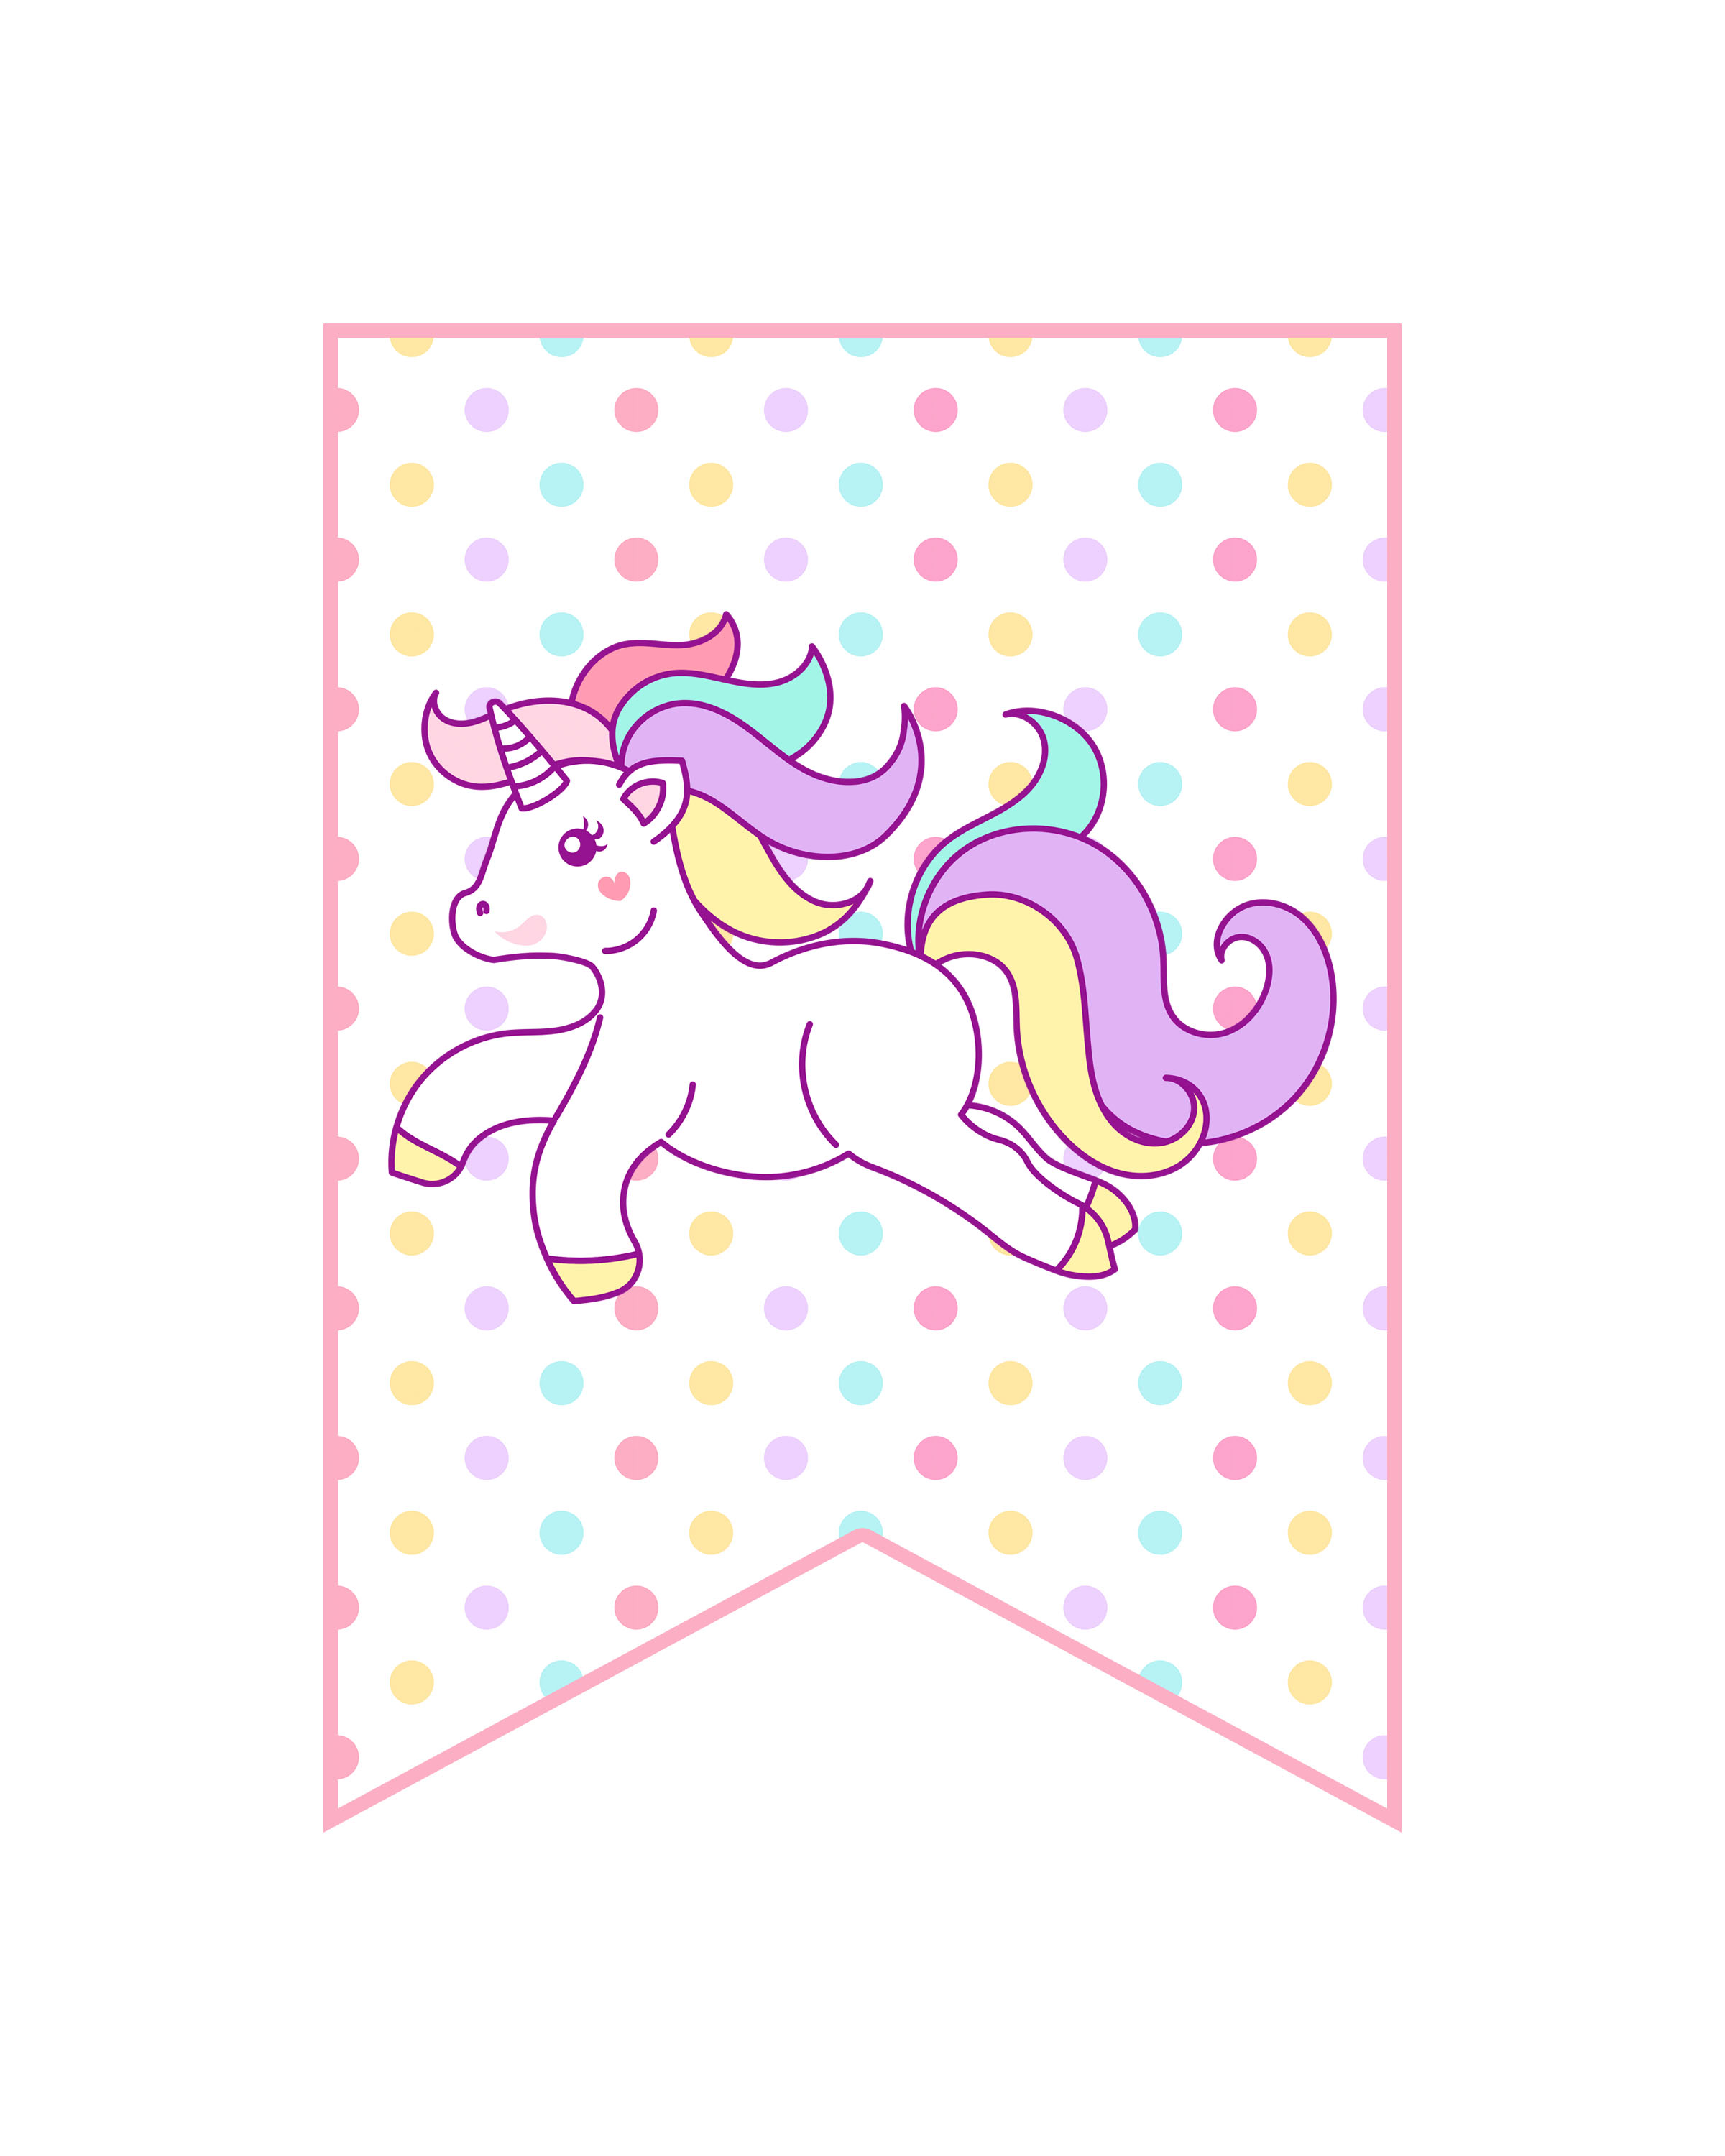 image about Free Unicorn Printable named No cost Printable Unicorn Social gathering Decorations Pack - The Cottage